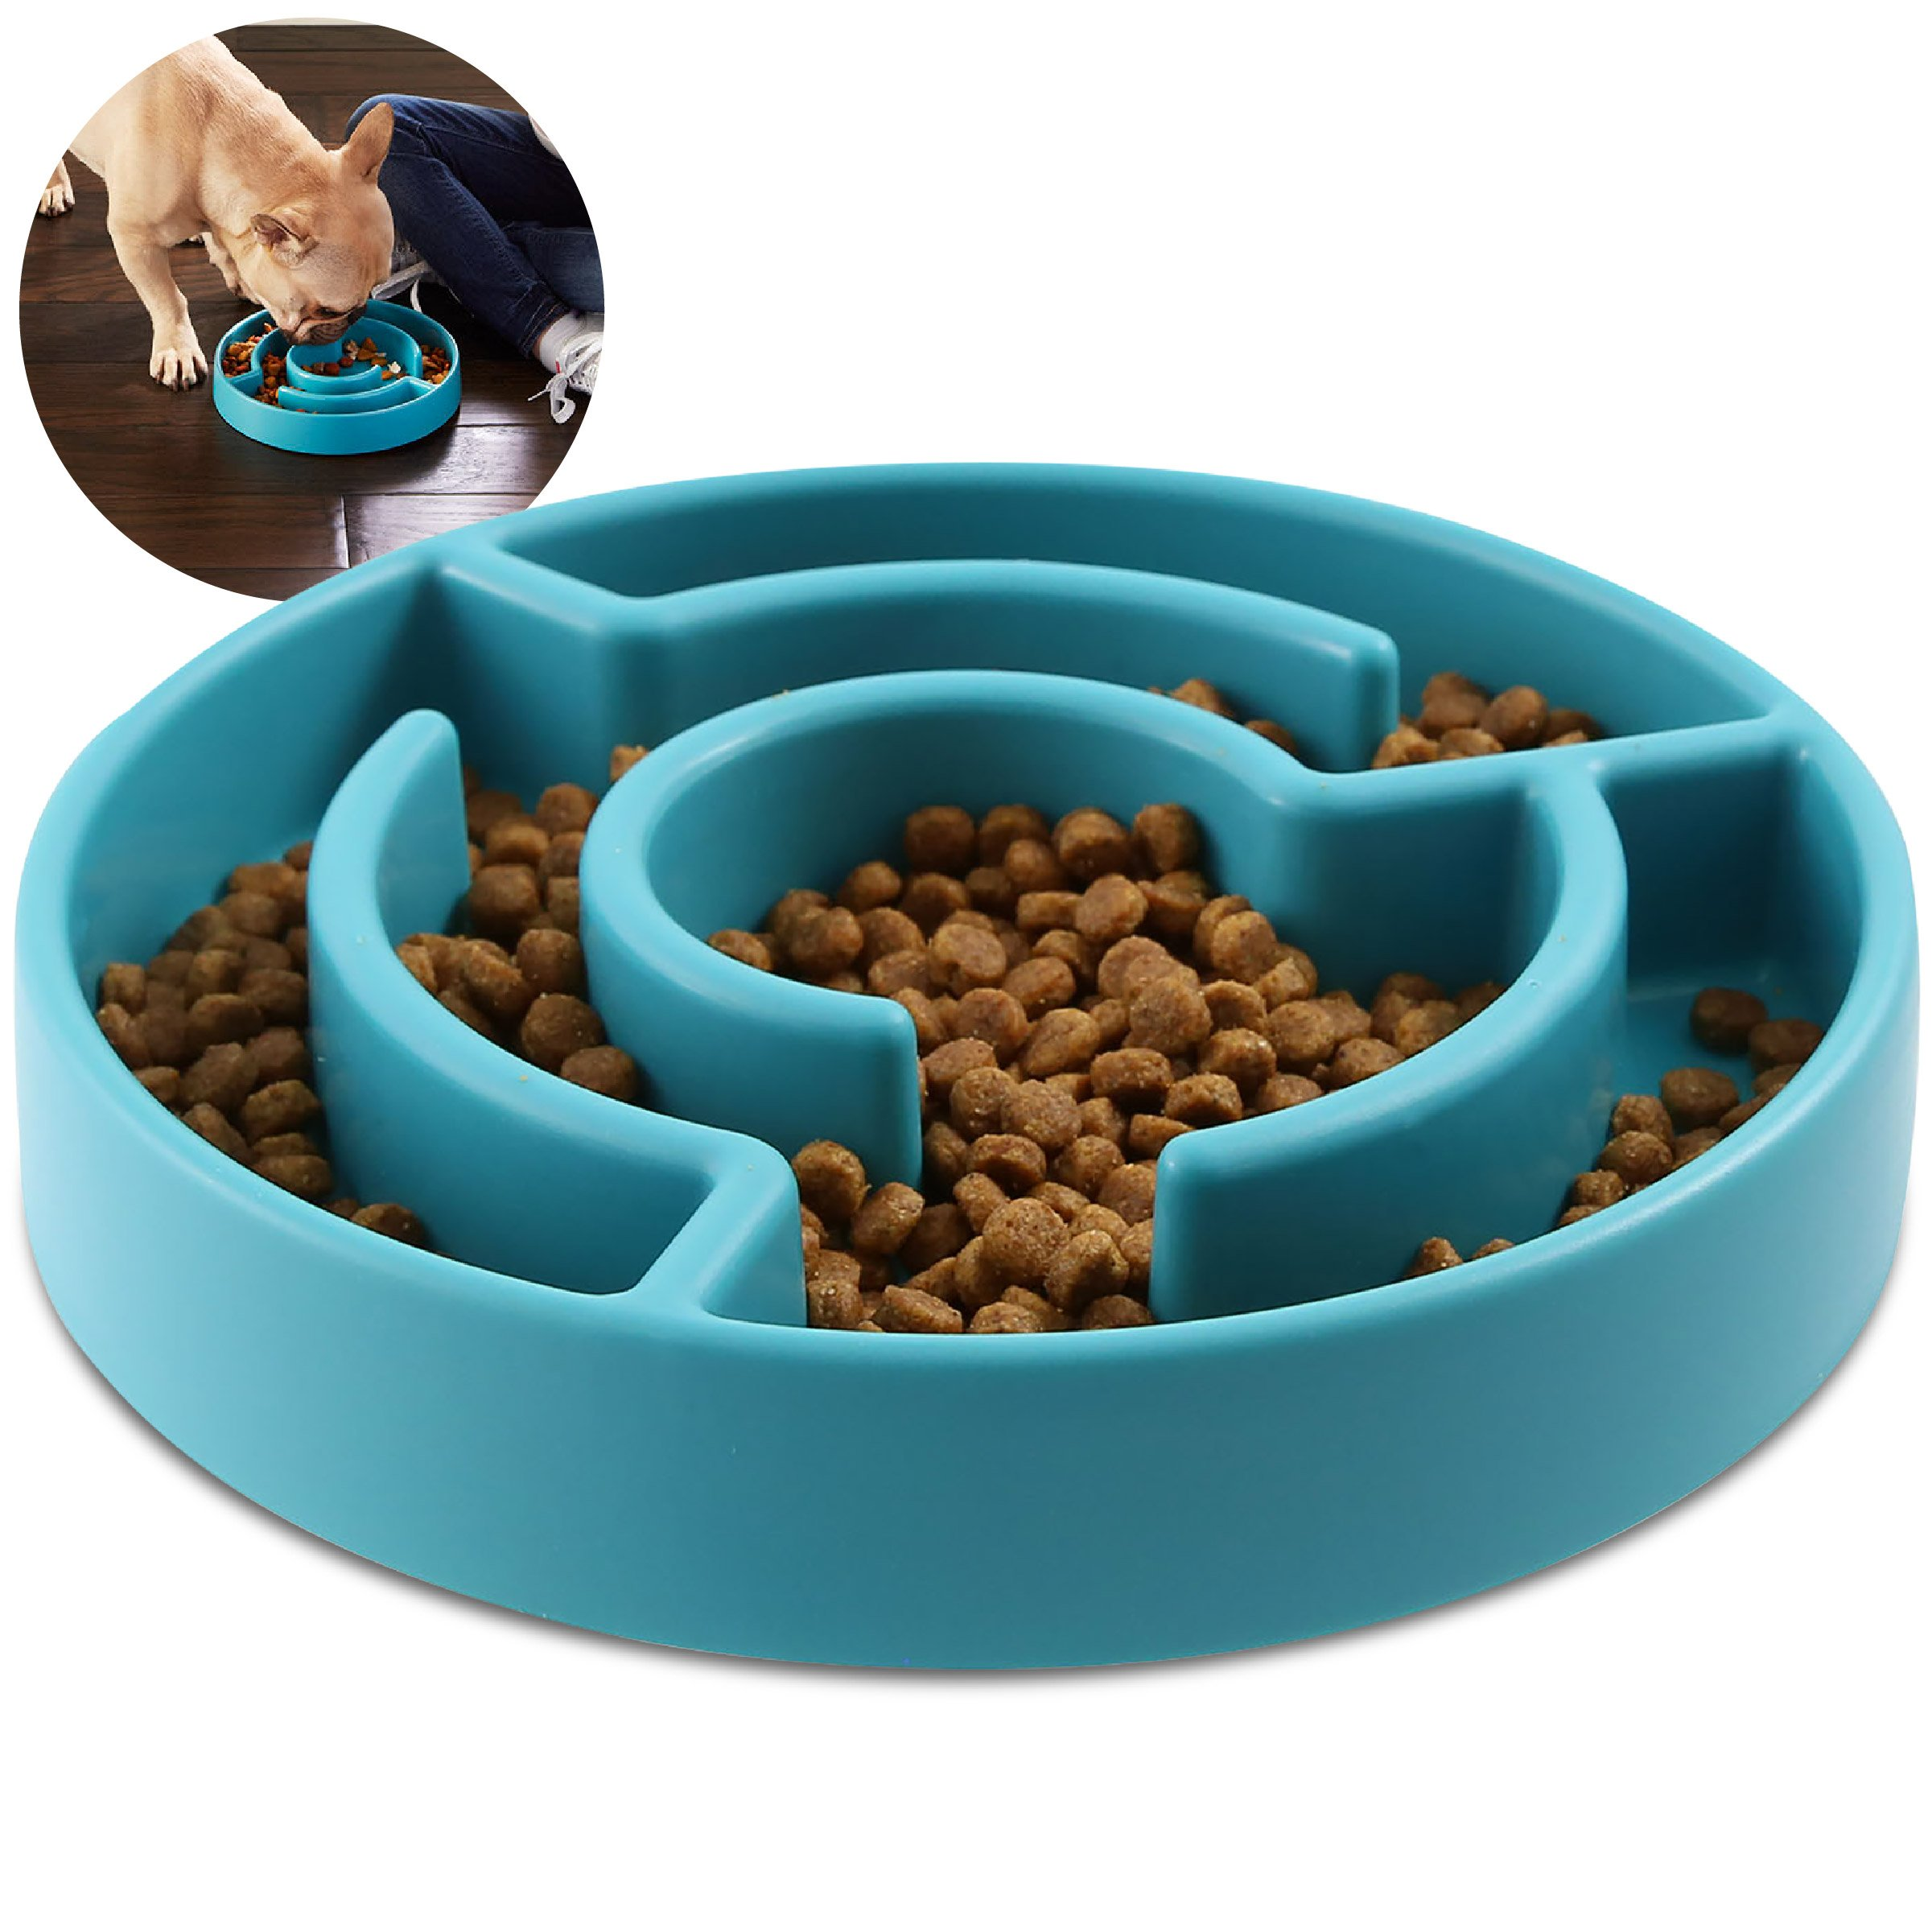 ANIMAL PLANET 9-Inch Slow Maze Feeder for Small/Medium Dogs, Aids in Digestive Health, Prevents Bloating from Fast Eating & Obesity, Rubber Grip Bottom, Fits 2 Cups of Kibble for Calorie Control, TEAL